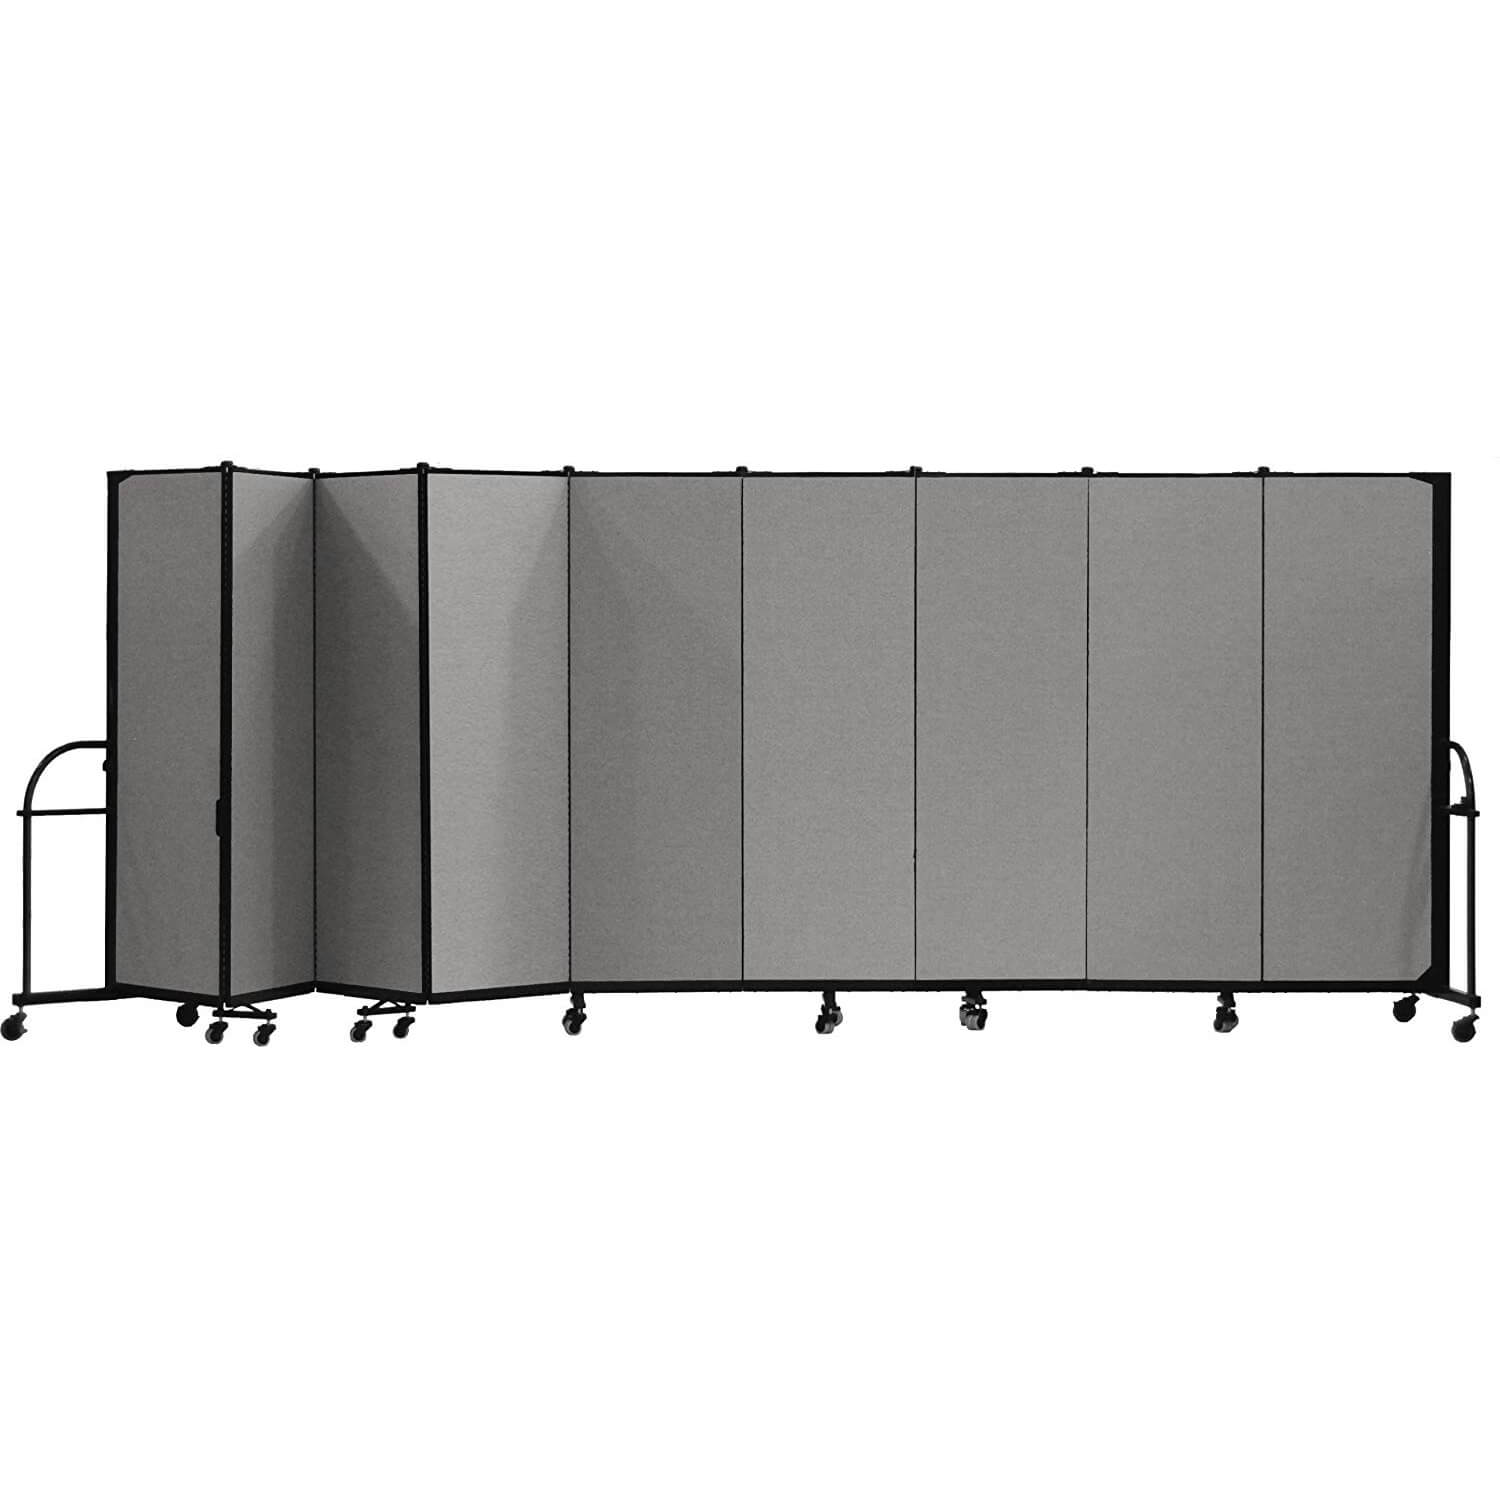 Panel room dividers CUB QSCFSL609DG RCS